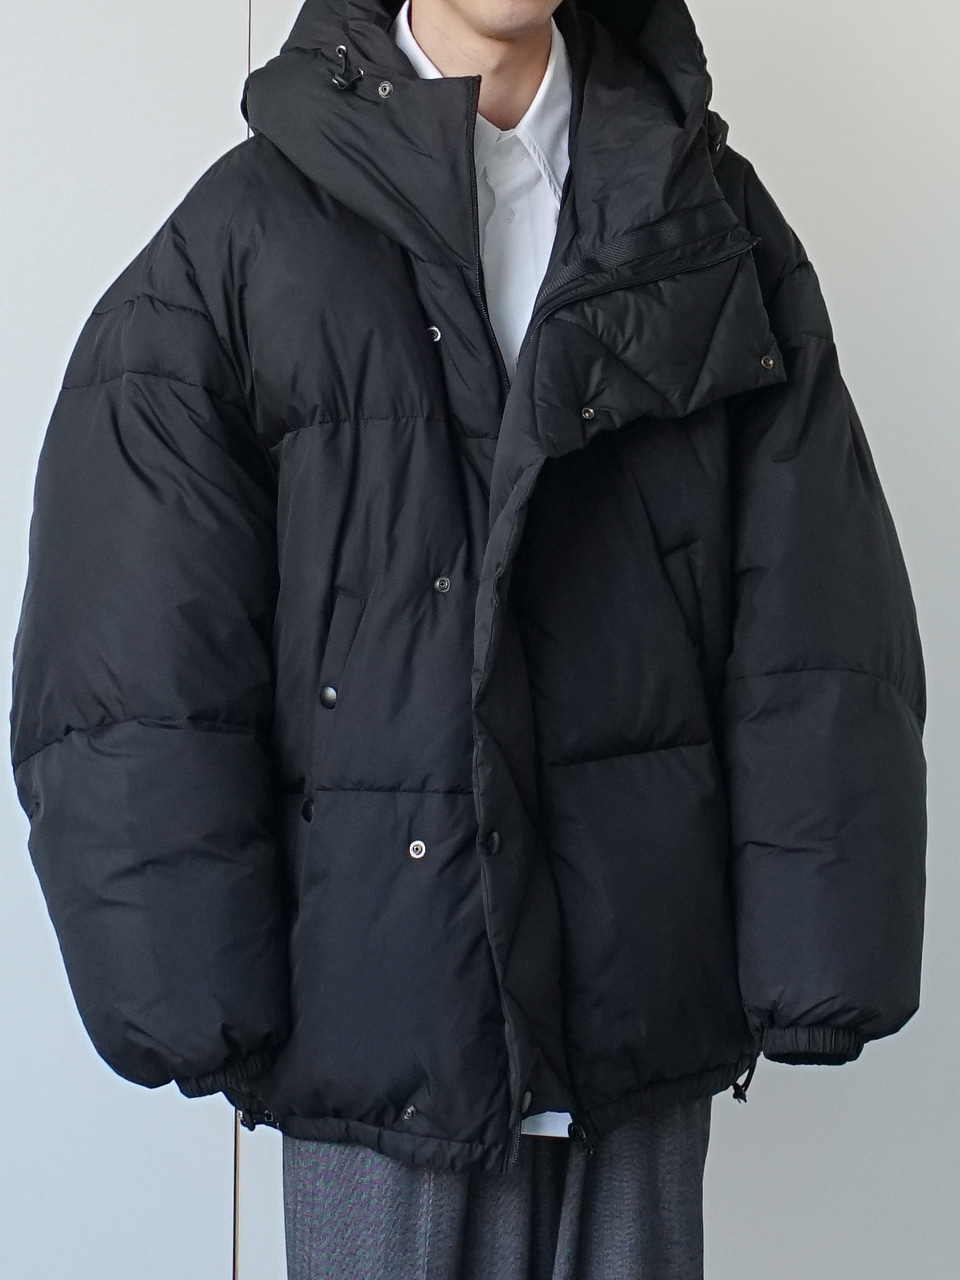 Lower Duck Down Jacket (4color)